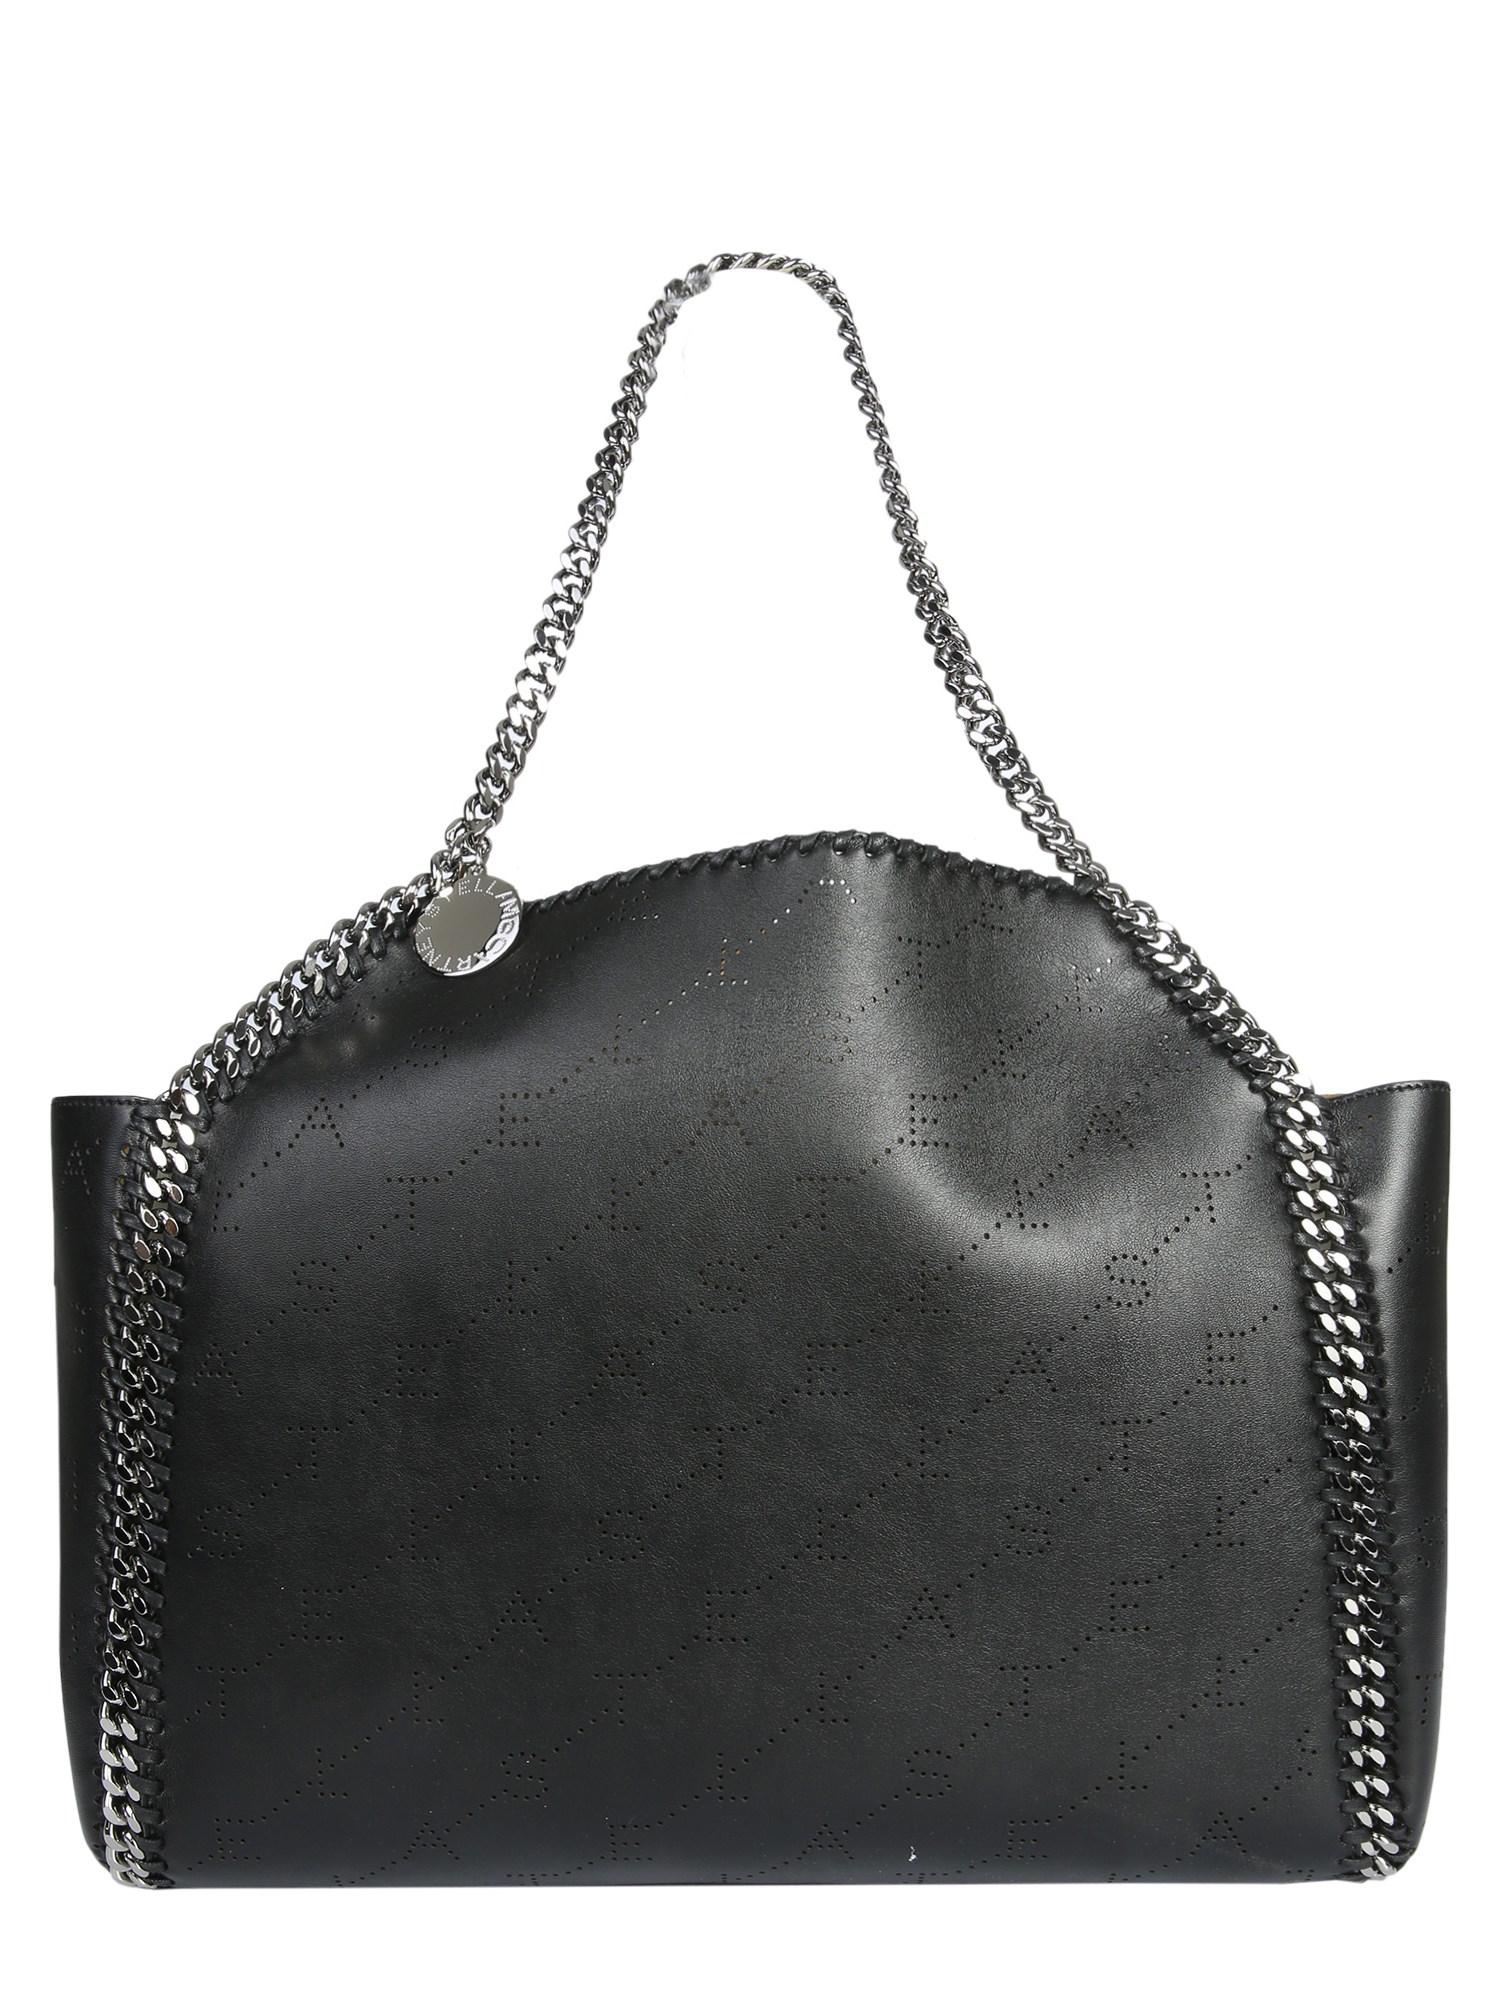 ff02d8f6922 Stella McCartney. Women s Black Falabella Reversible Tote Bag In SHAGGY Deer  Leather